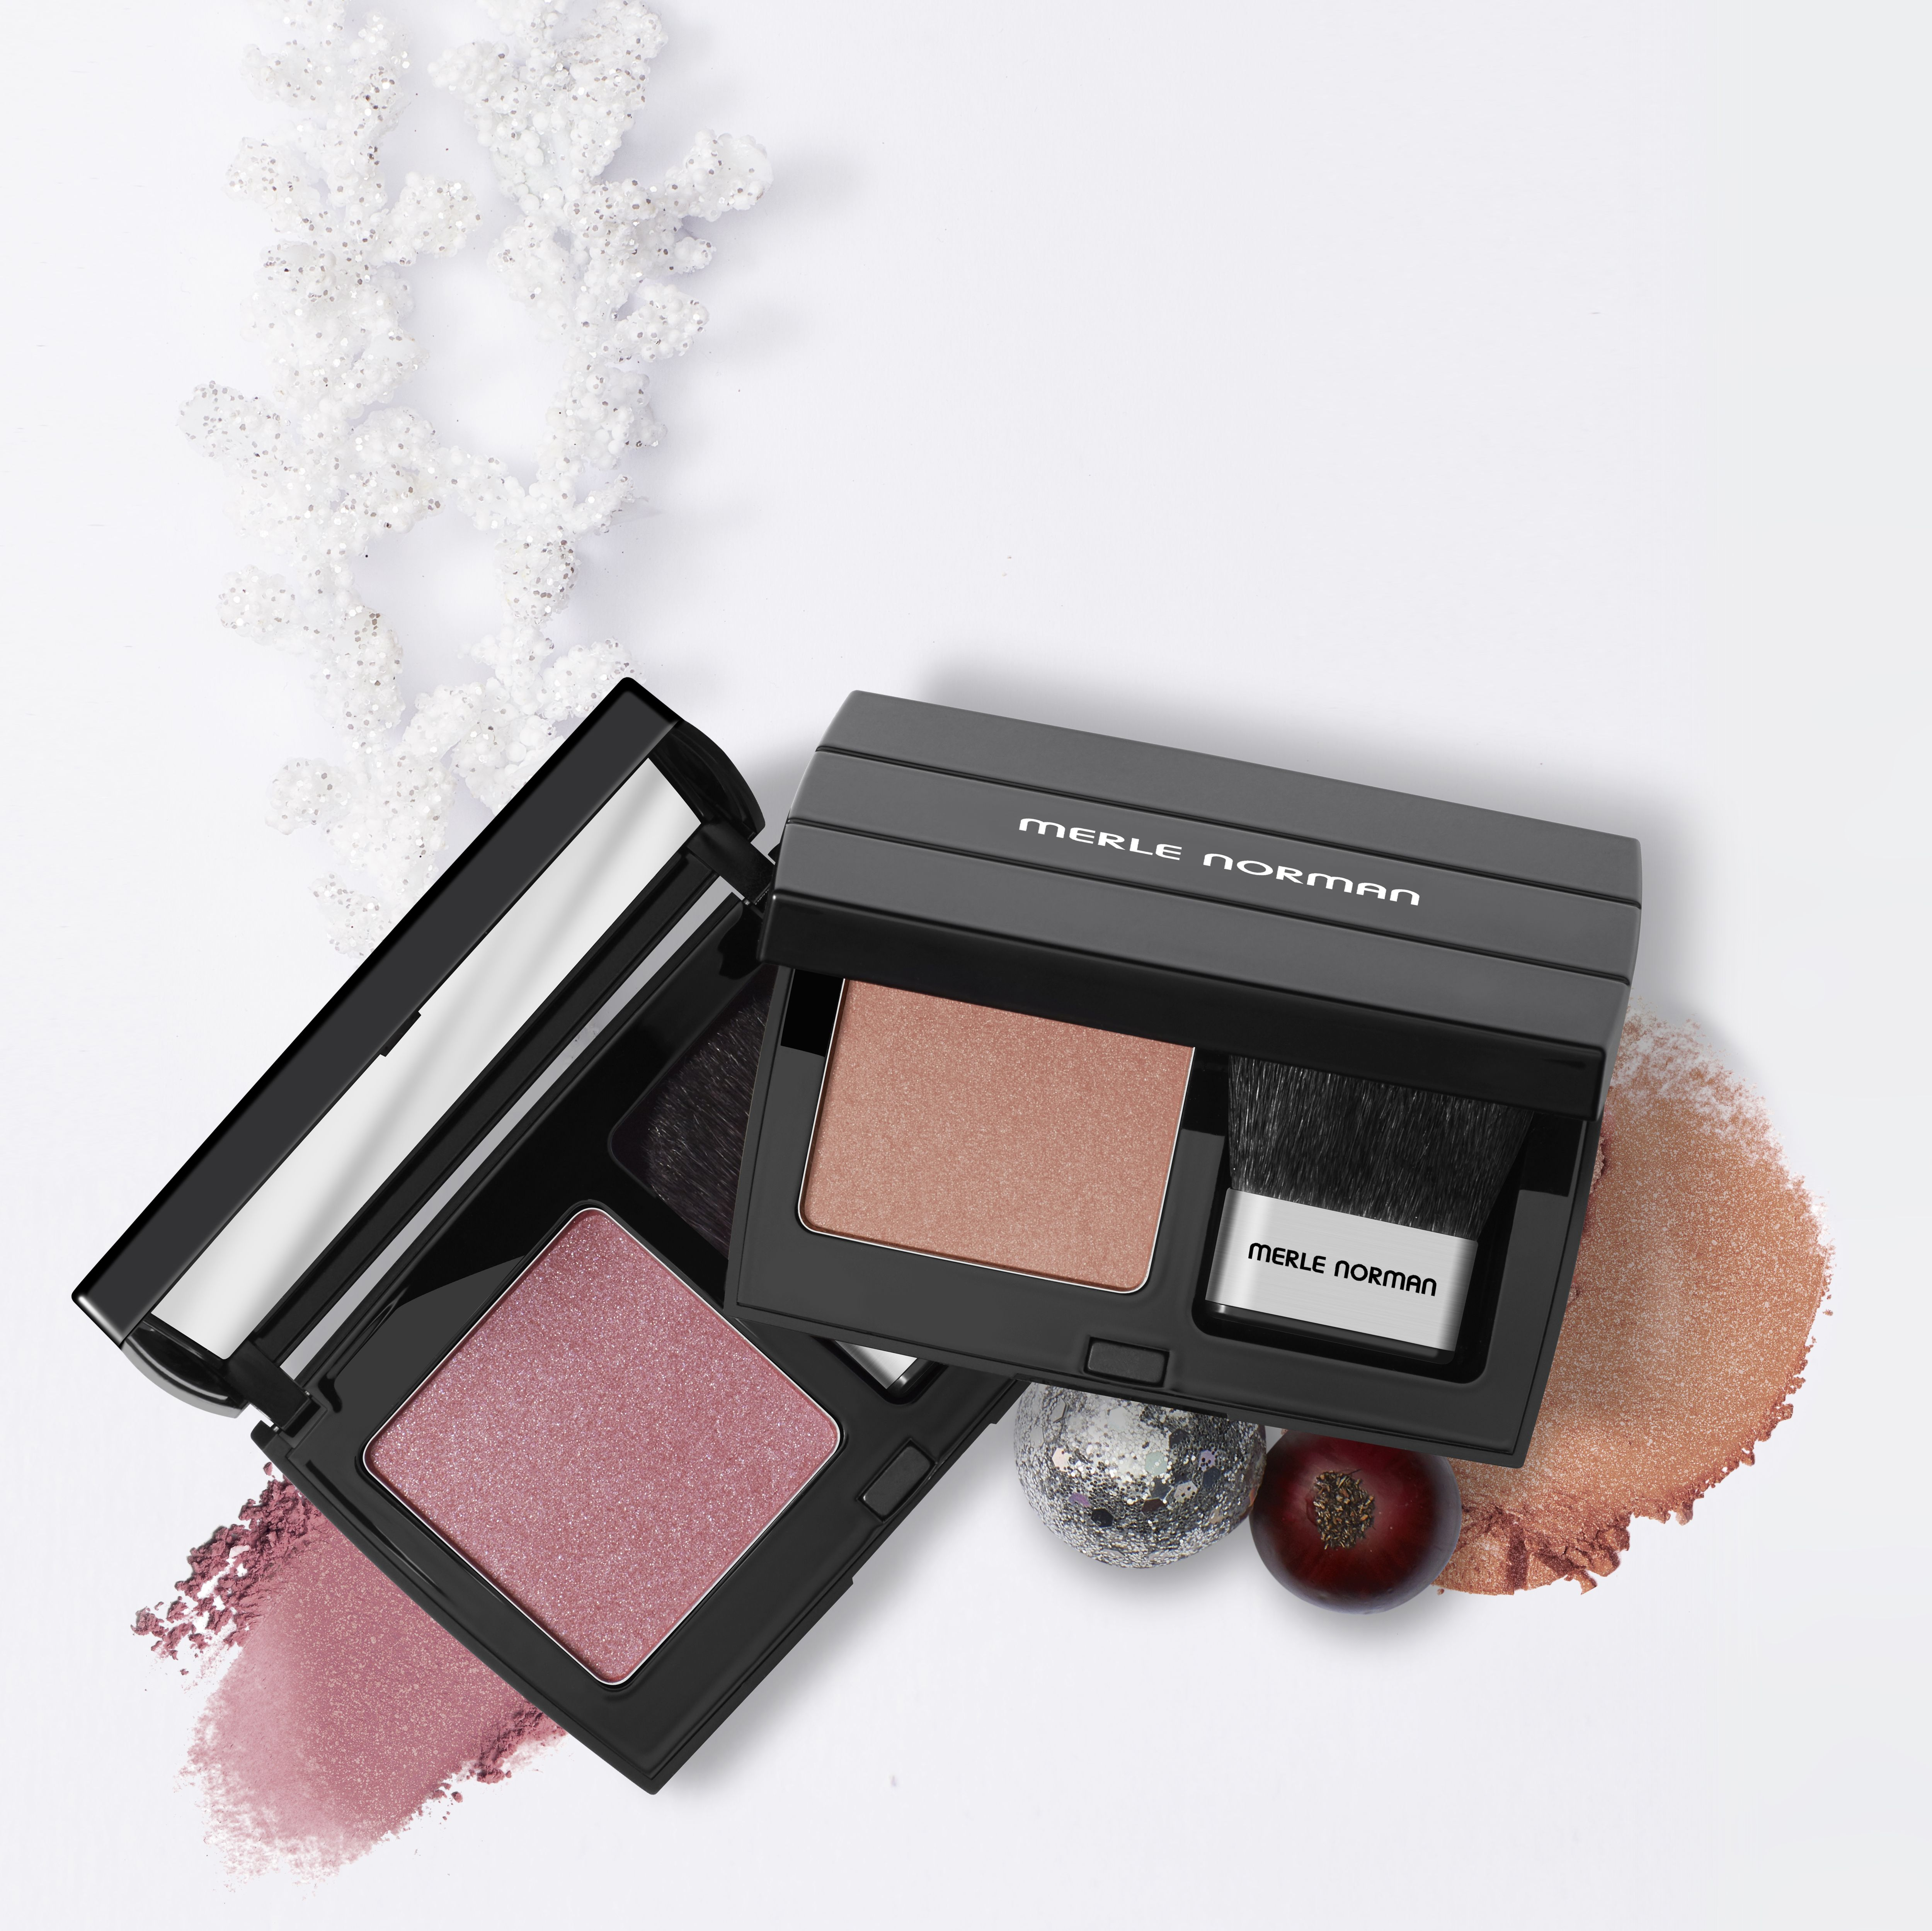 2 new cheekscolors to Love! Color collection, Blush, Color